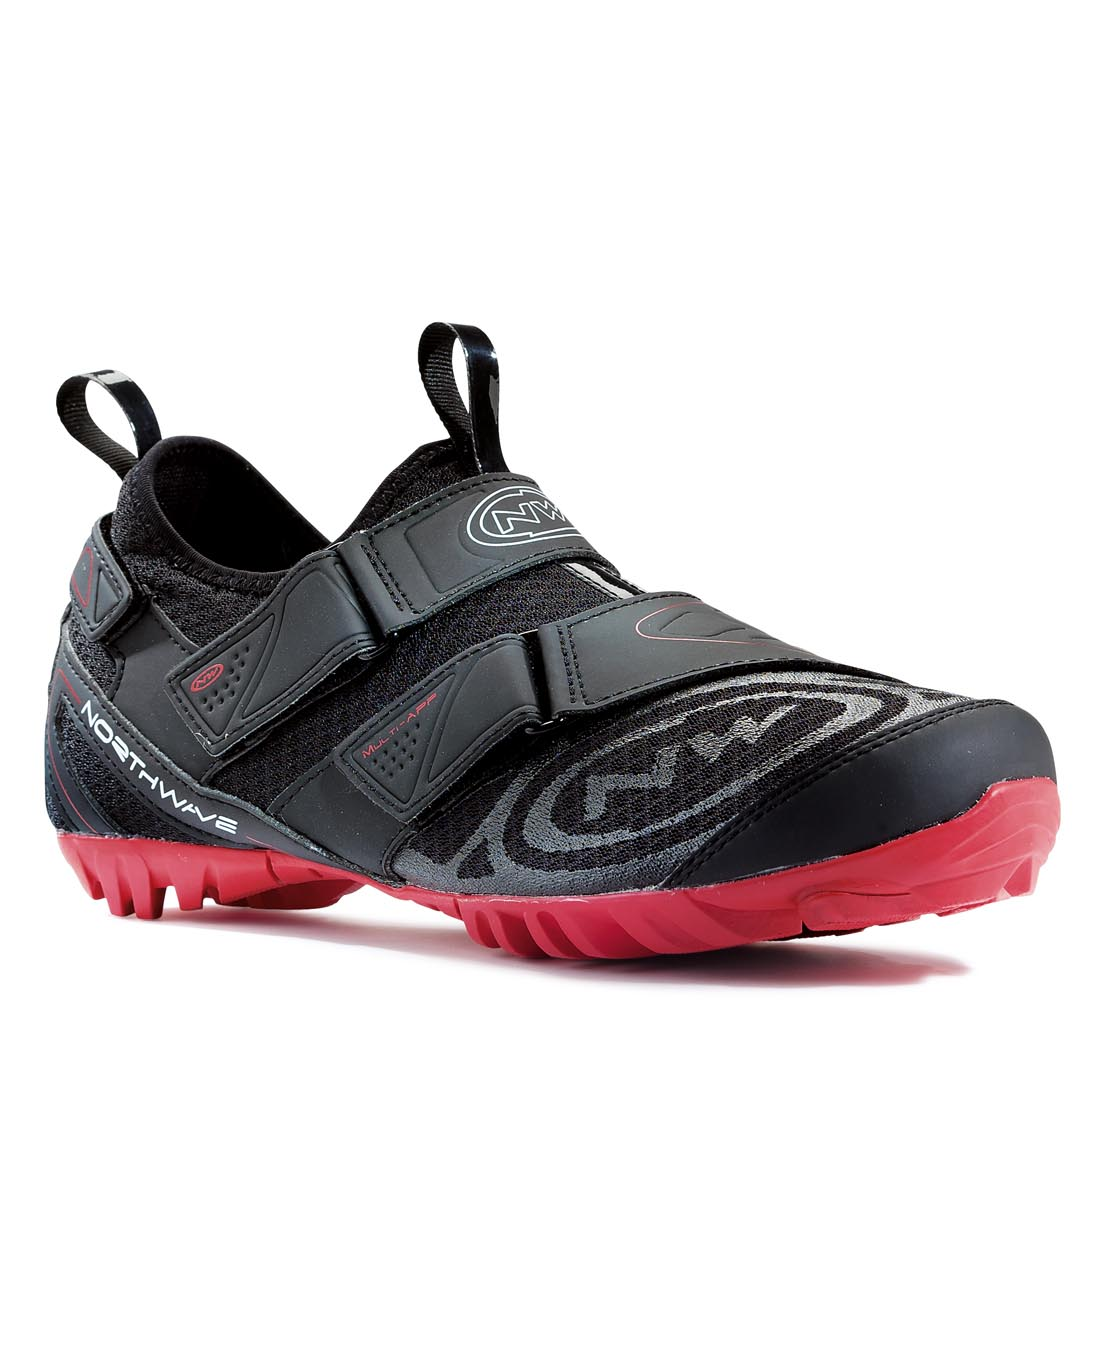 NORTHWAVE ZAPATILLAS MULTIUP